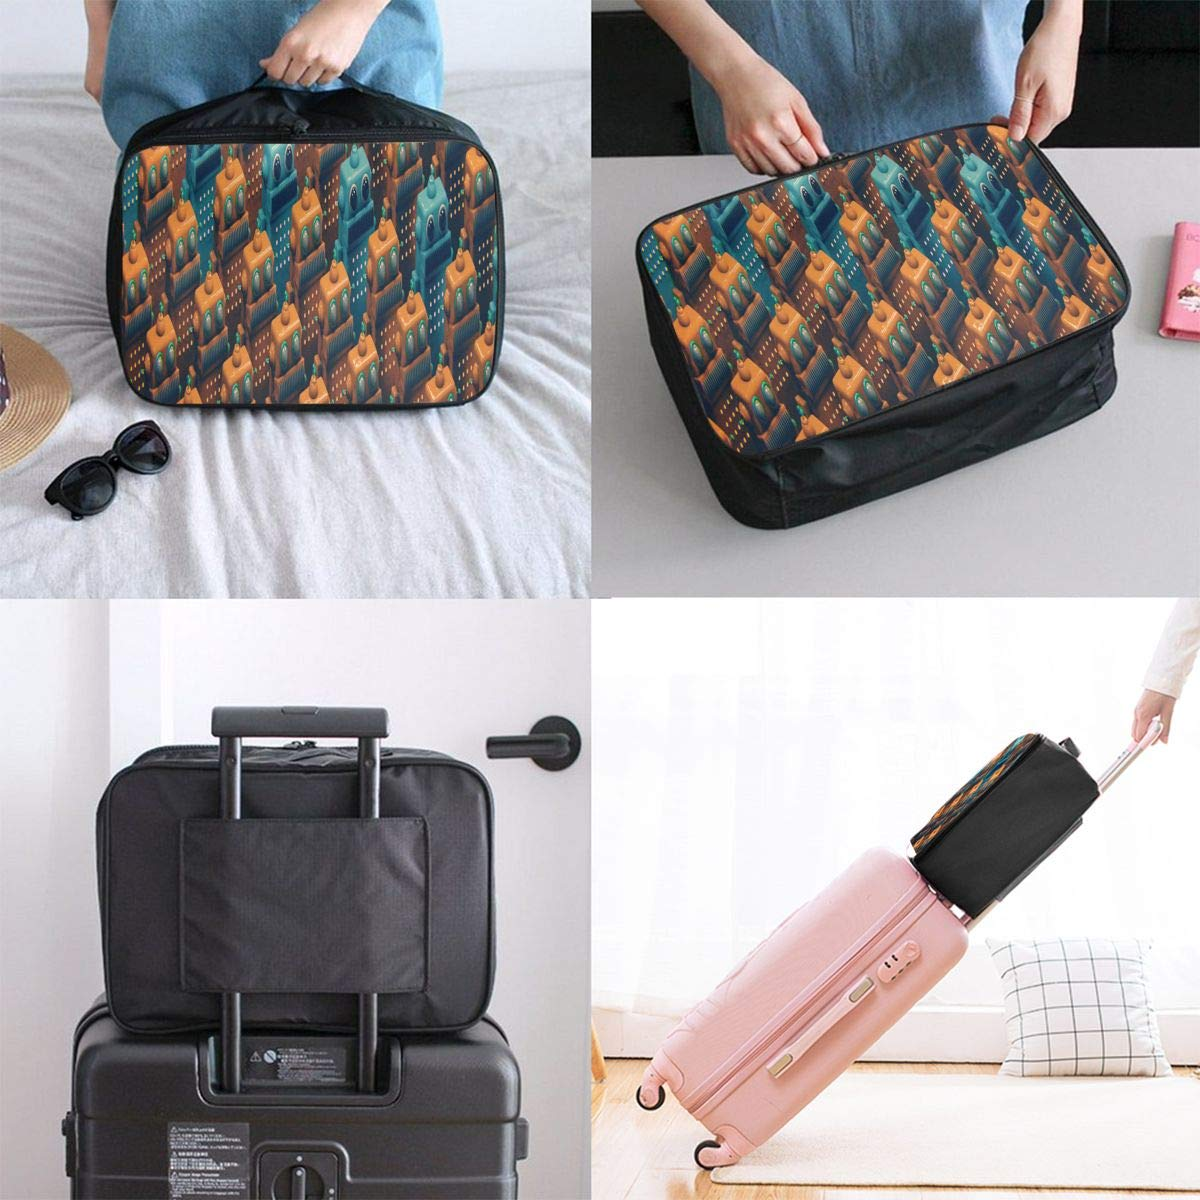 Robot Army Travel Duffel Bag Casual Large Capacity Portable Luggage Bag Suitcase Storage Bag Luggage Packing Tote Bag Weekend Trip